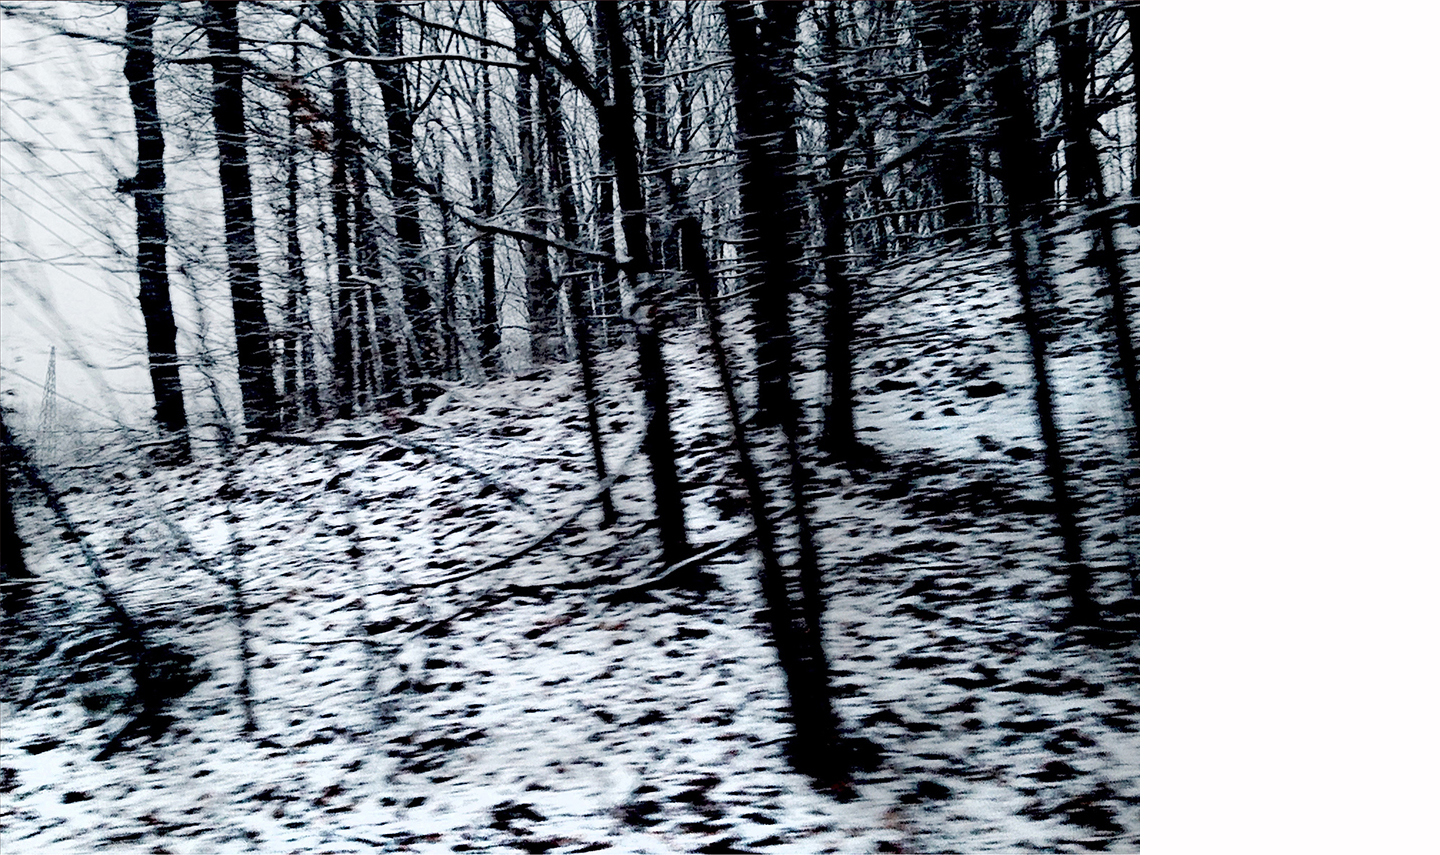 """Winterscape #7   Archival Pigment on Hahnemuhle German Etching Paper Rising Museum Acid Free Mounting Board Acrylite Non -glare UV Filtering Plexi Glass Custom White Oak Frame 29 x 34"""" including a 6"""" white mat border   $950"""